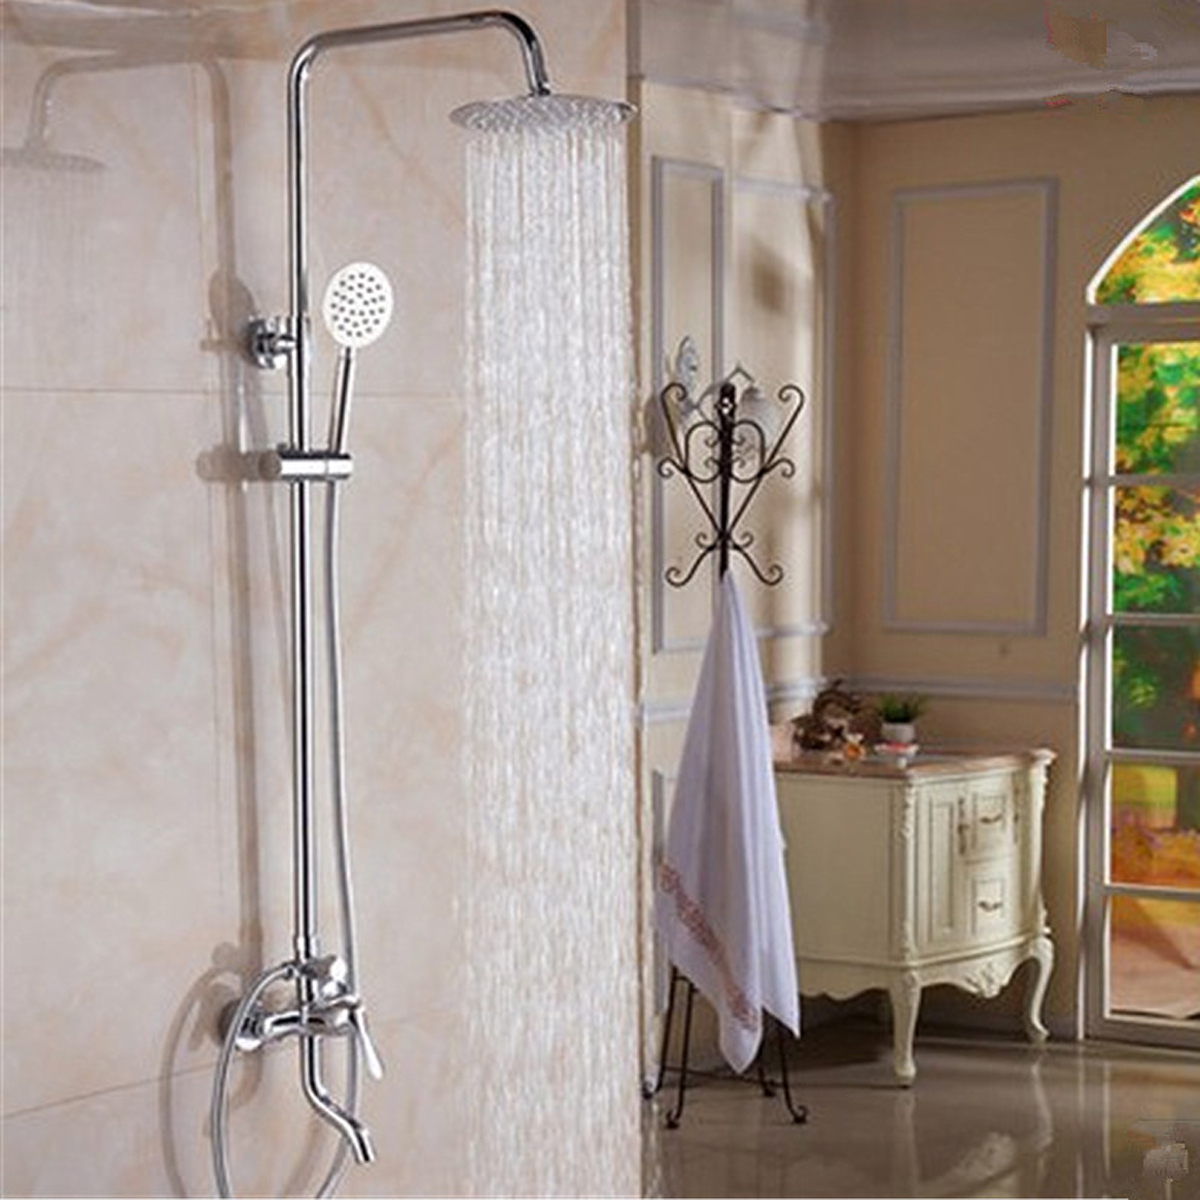 Wall Mount 8'' Rainfall Shower Head Faucet Set Chrome Brass Polished Shower Tub Mixer Tap Saving Nozzle Aerator High Pressure